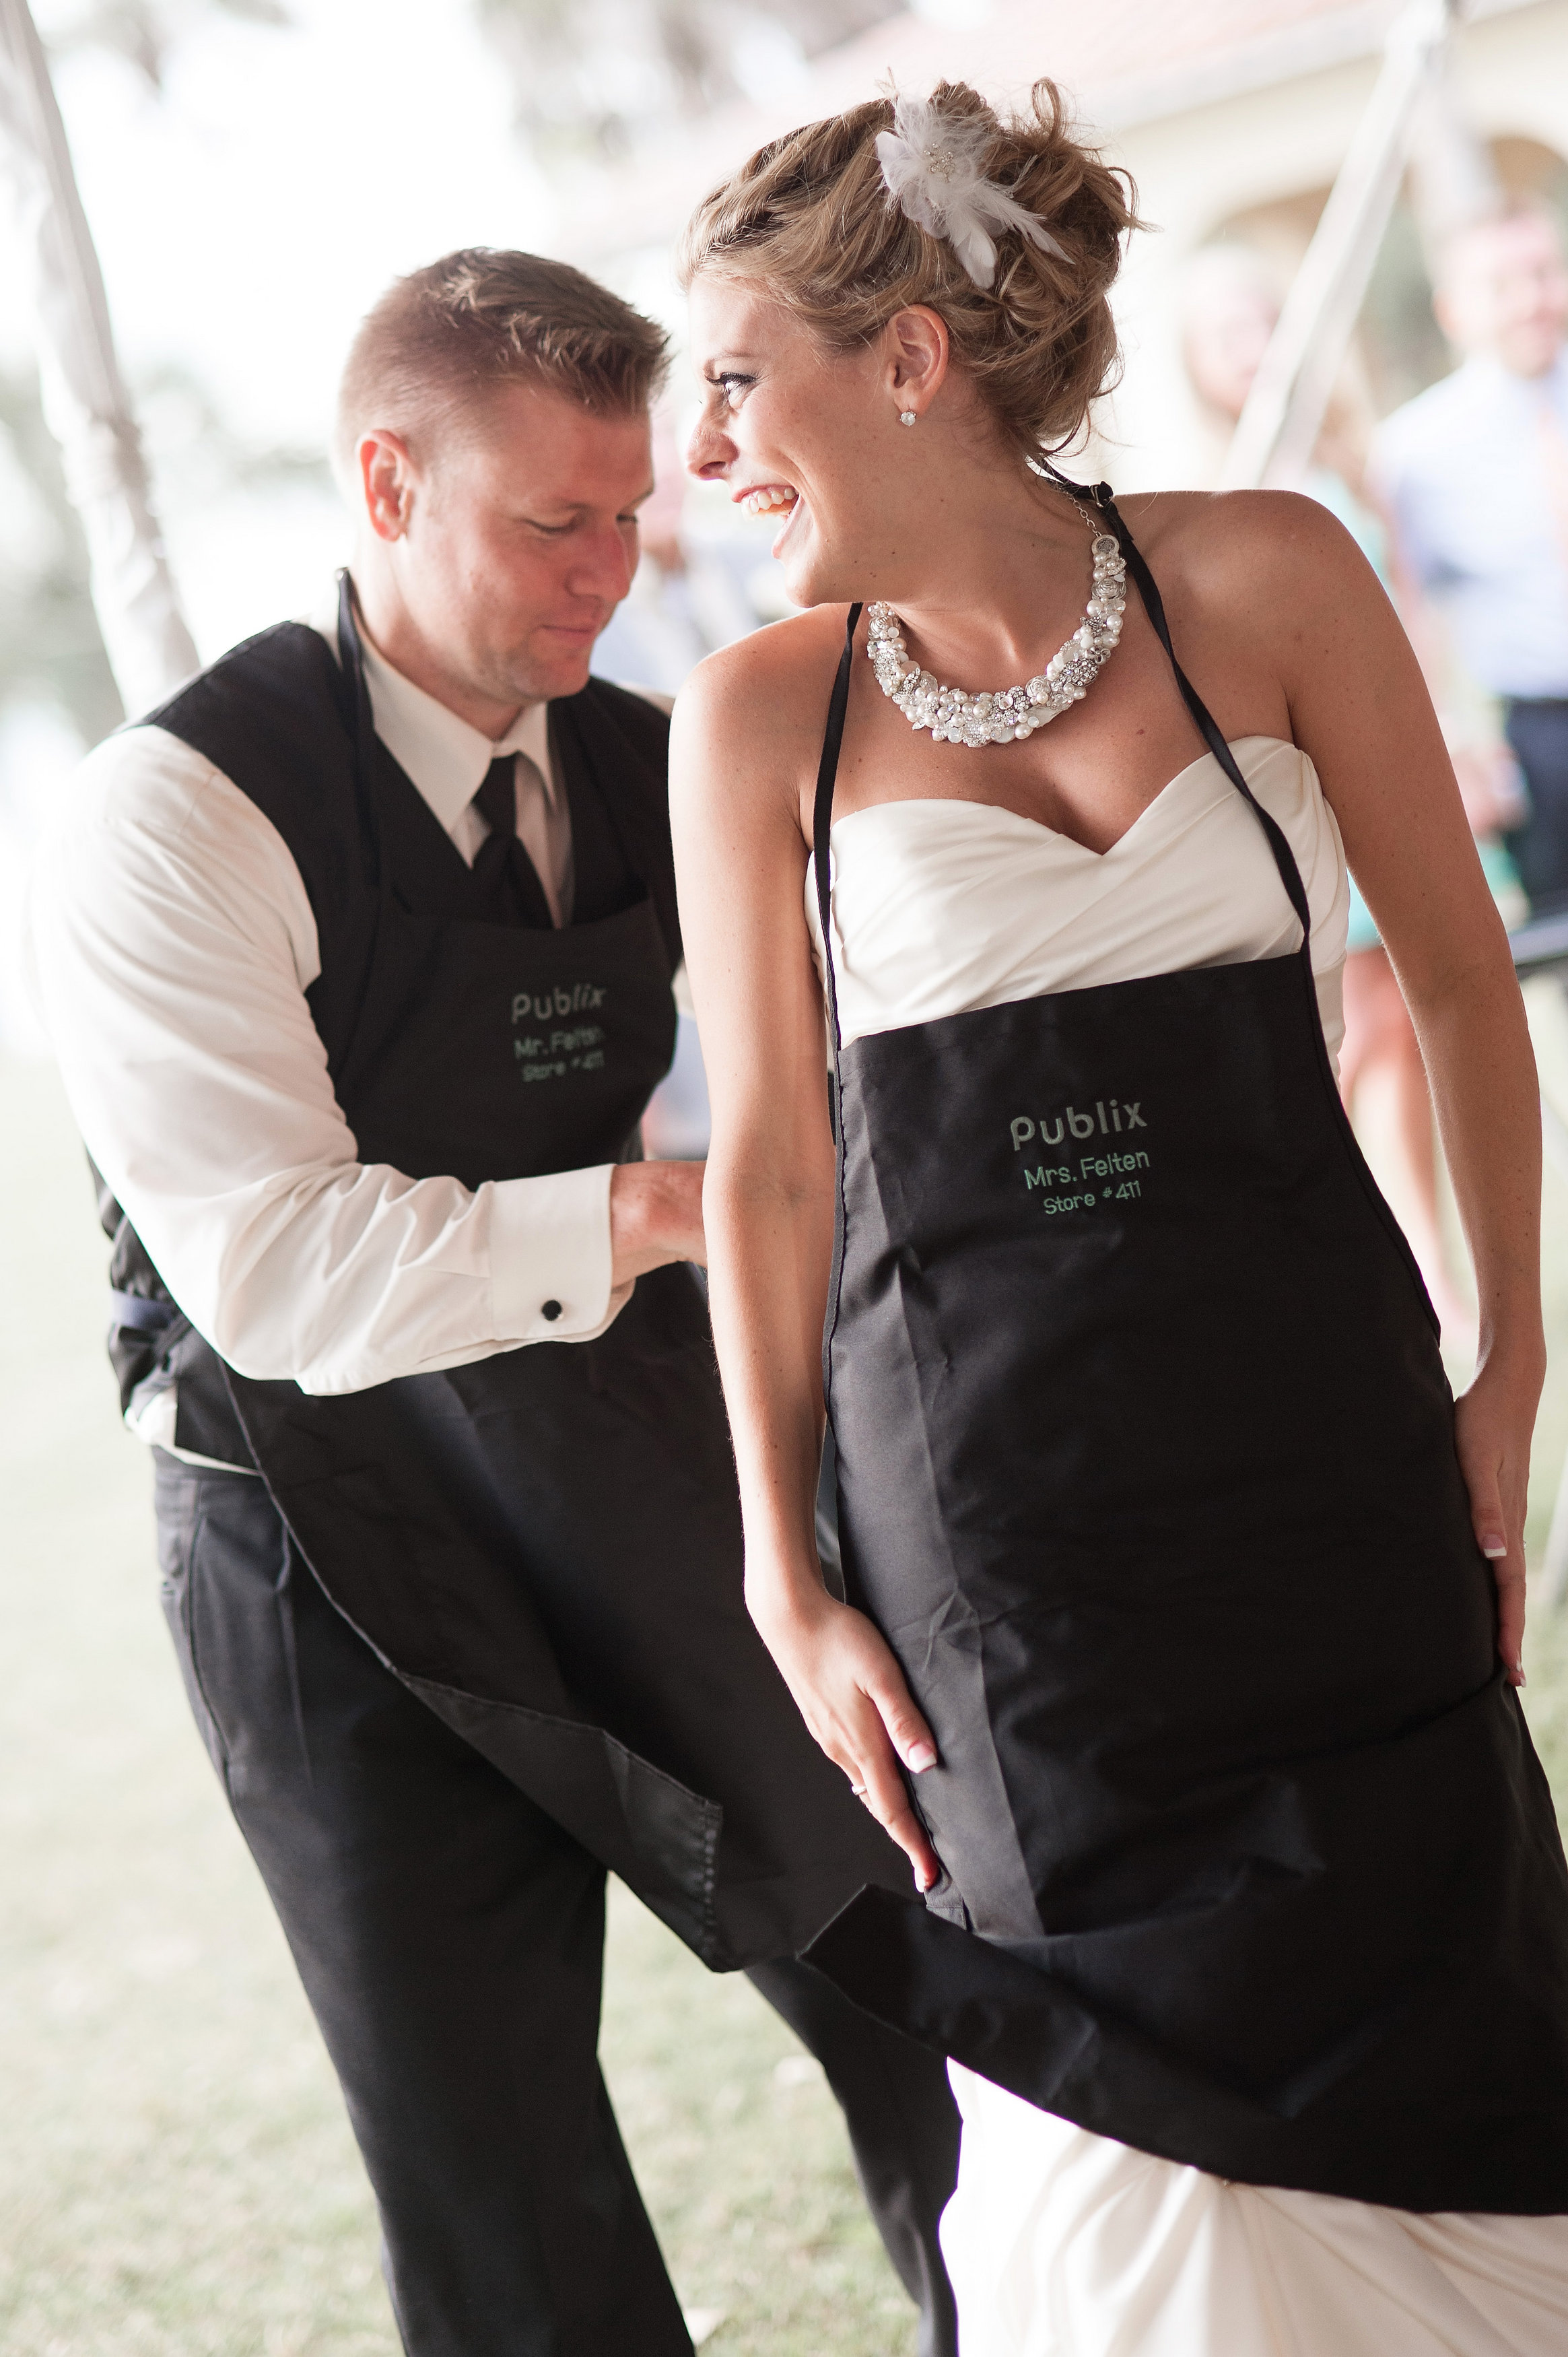 Having met while working at Publix, the couple was surprised with custom Publix aprons